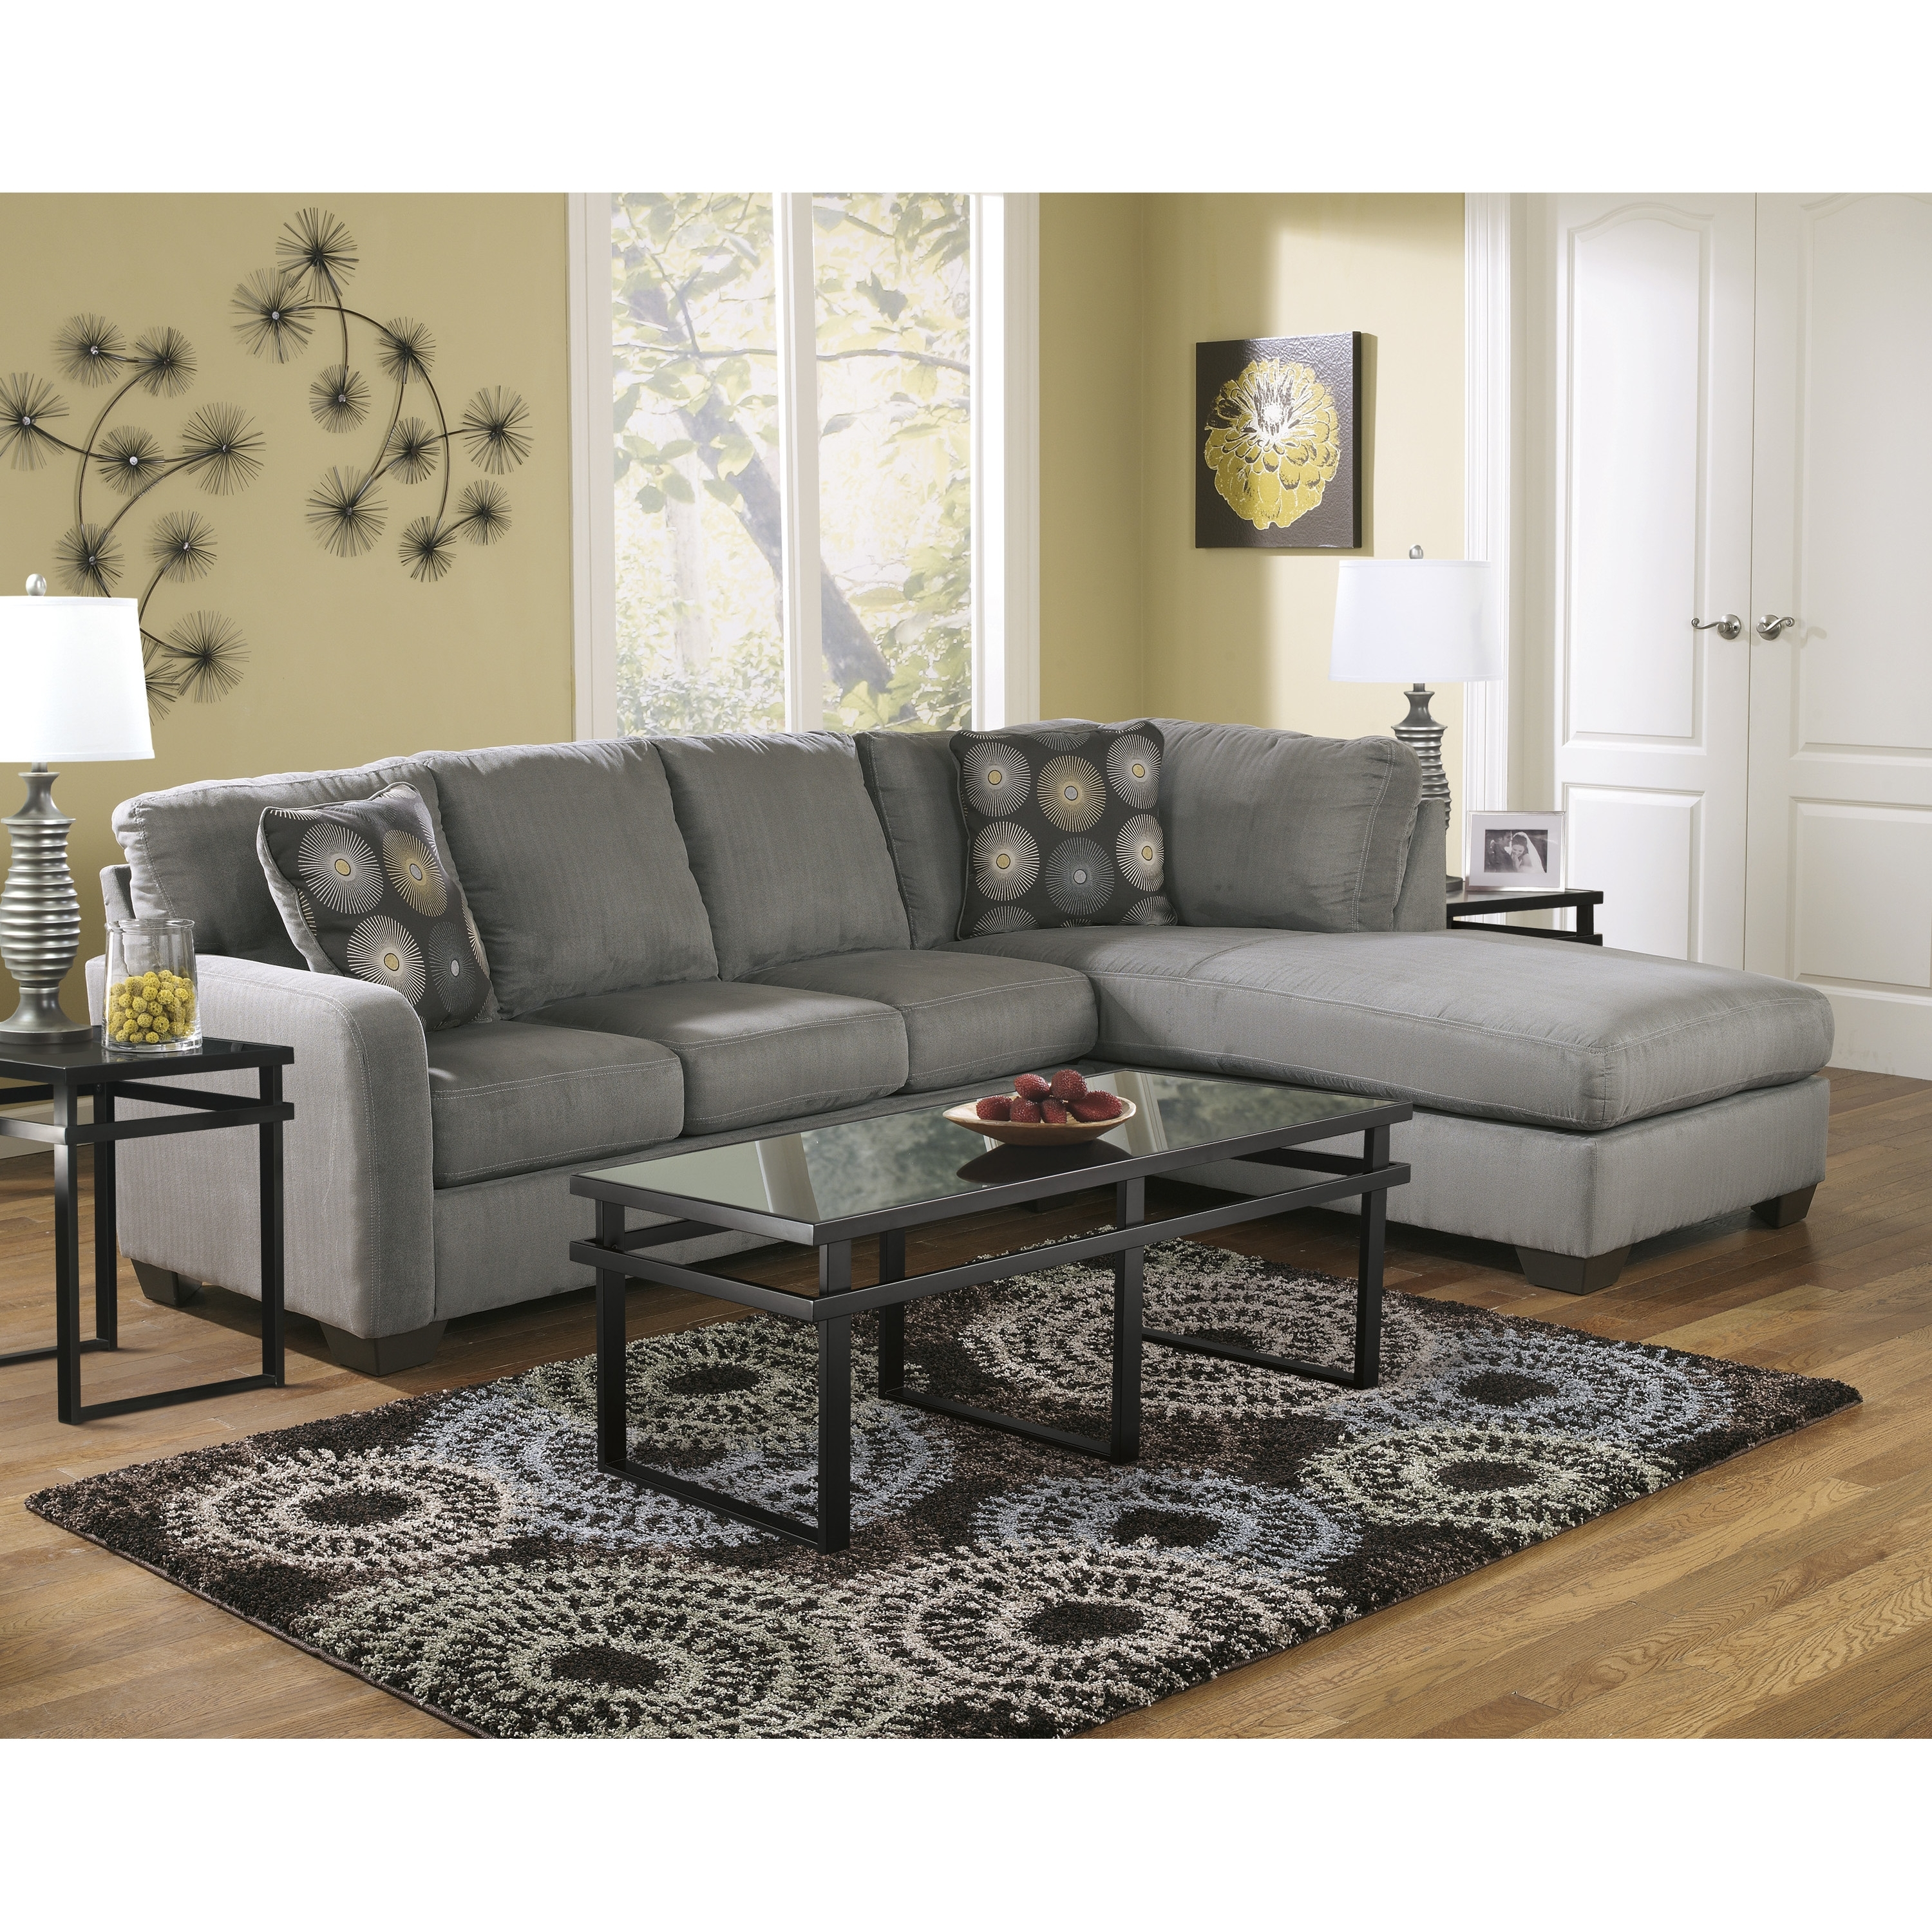 Most Popular Reclining Sectionals With Chaise For Tables For Couches Fresh In Great Furniture L Shaped Grey (View 4 of 15)